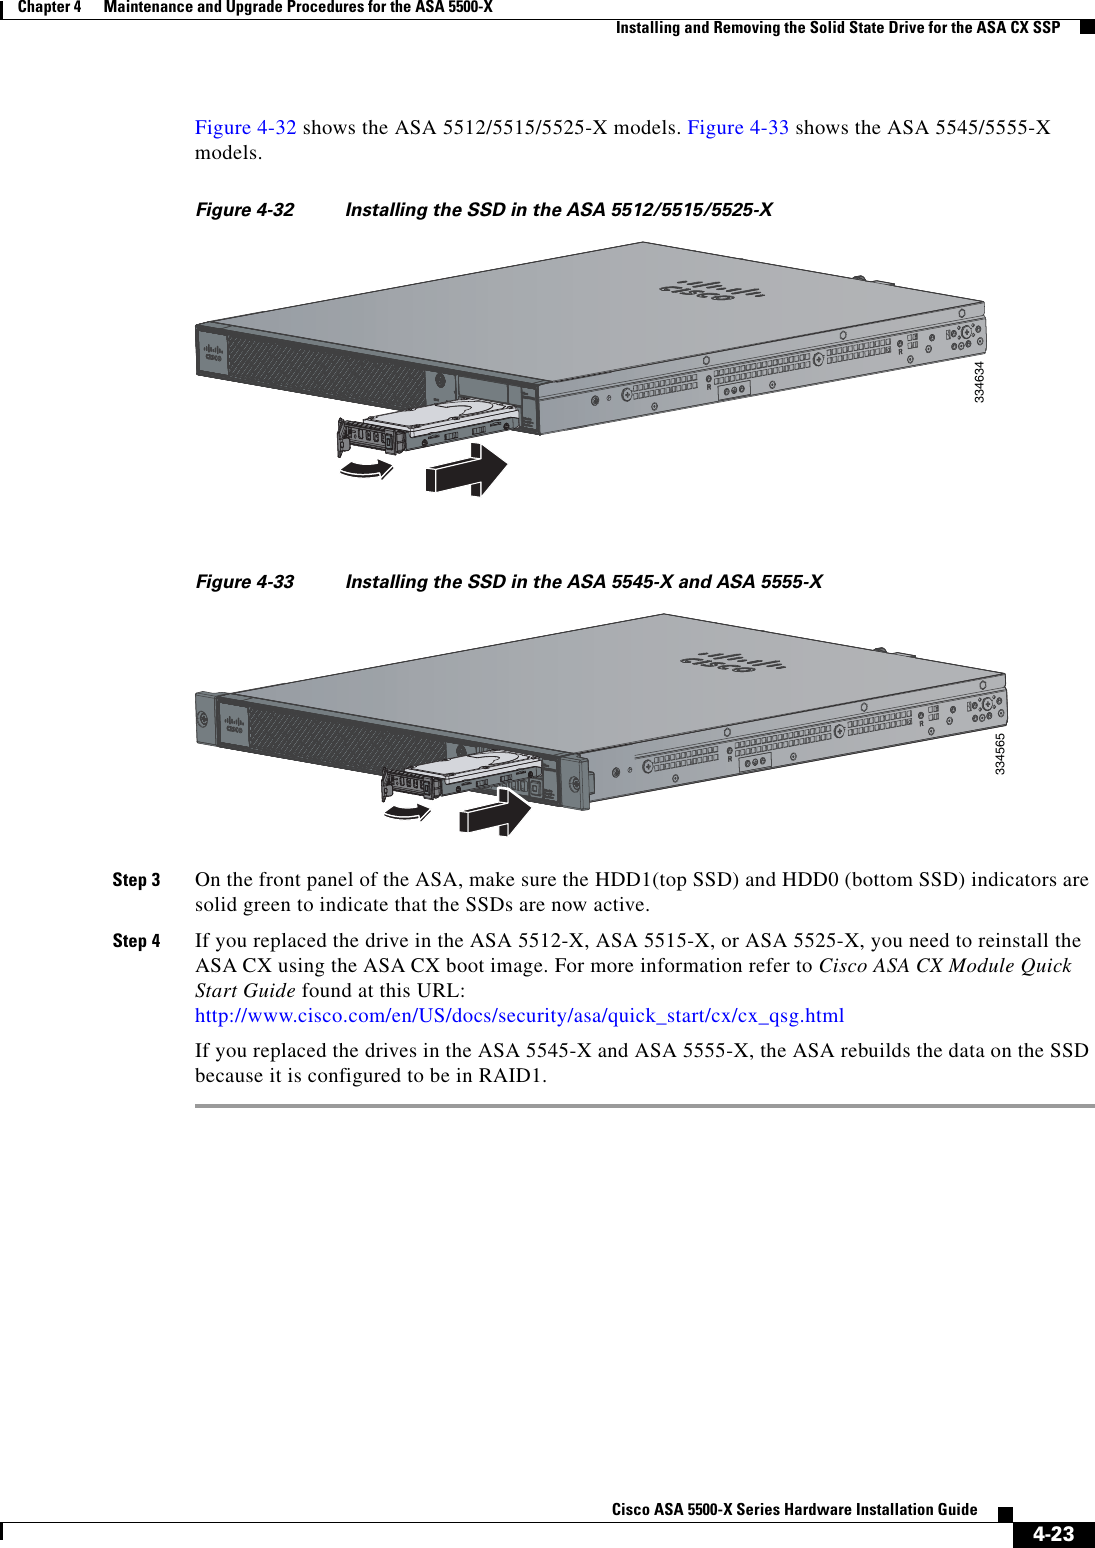 Cisco Systems Asa5512Aw1Ypr Users Manual Asa_hw